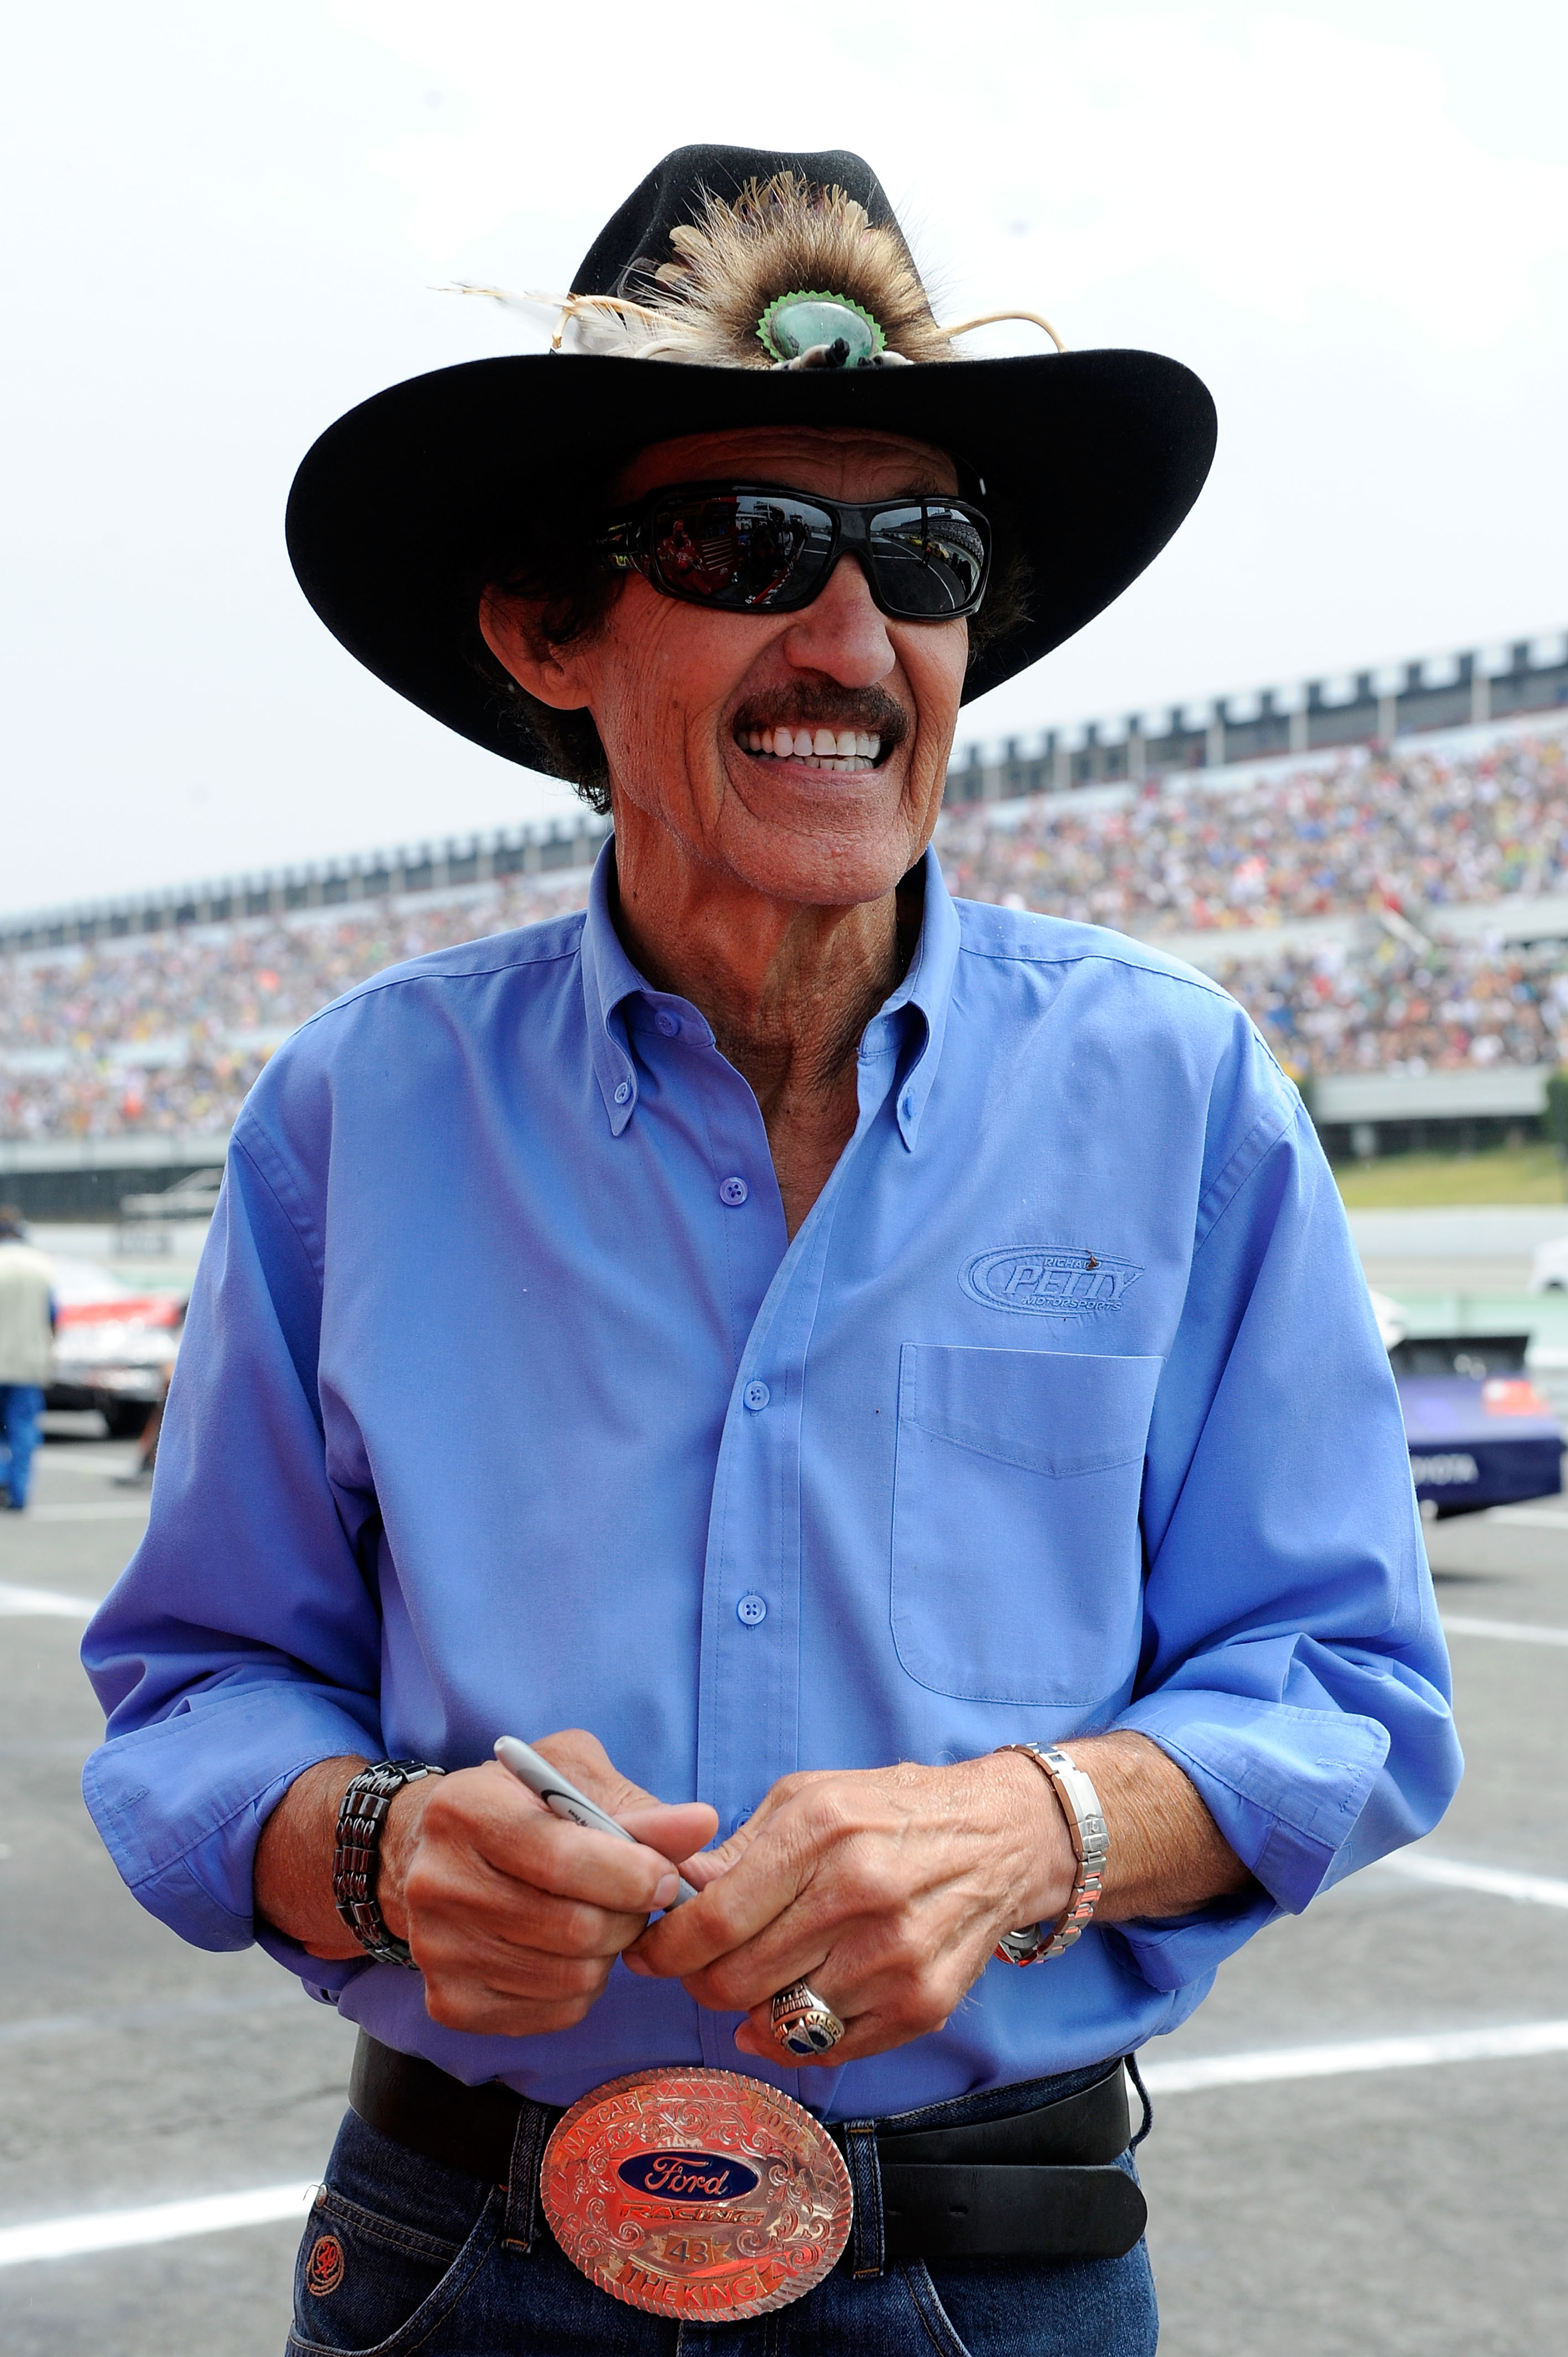 LONG POND, PA - AUGUST 01:  Team owner Richard Petty stands on the grid prior to the start of the NASCAR Sprint Cup Series Sunoco Red Cross Pennsylvania 500 at Pocono Raceway on August 1, 2010 in Long Pond, Pennsylvania.  (Photo by John Harrelson/Getty Im